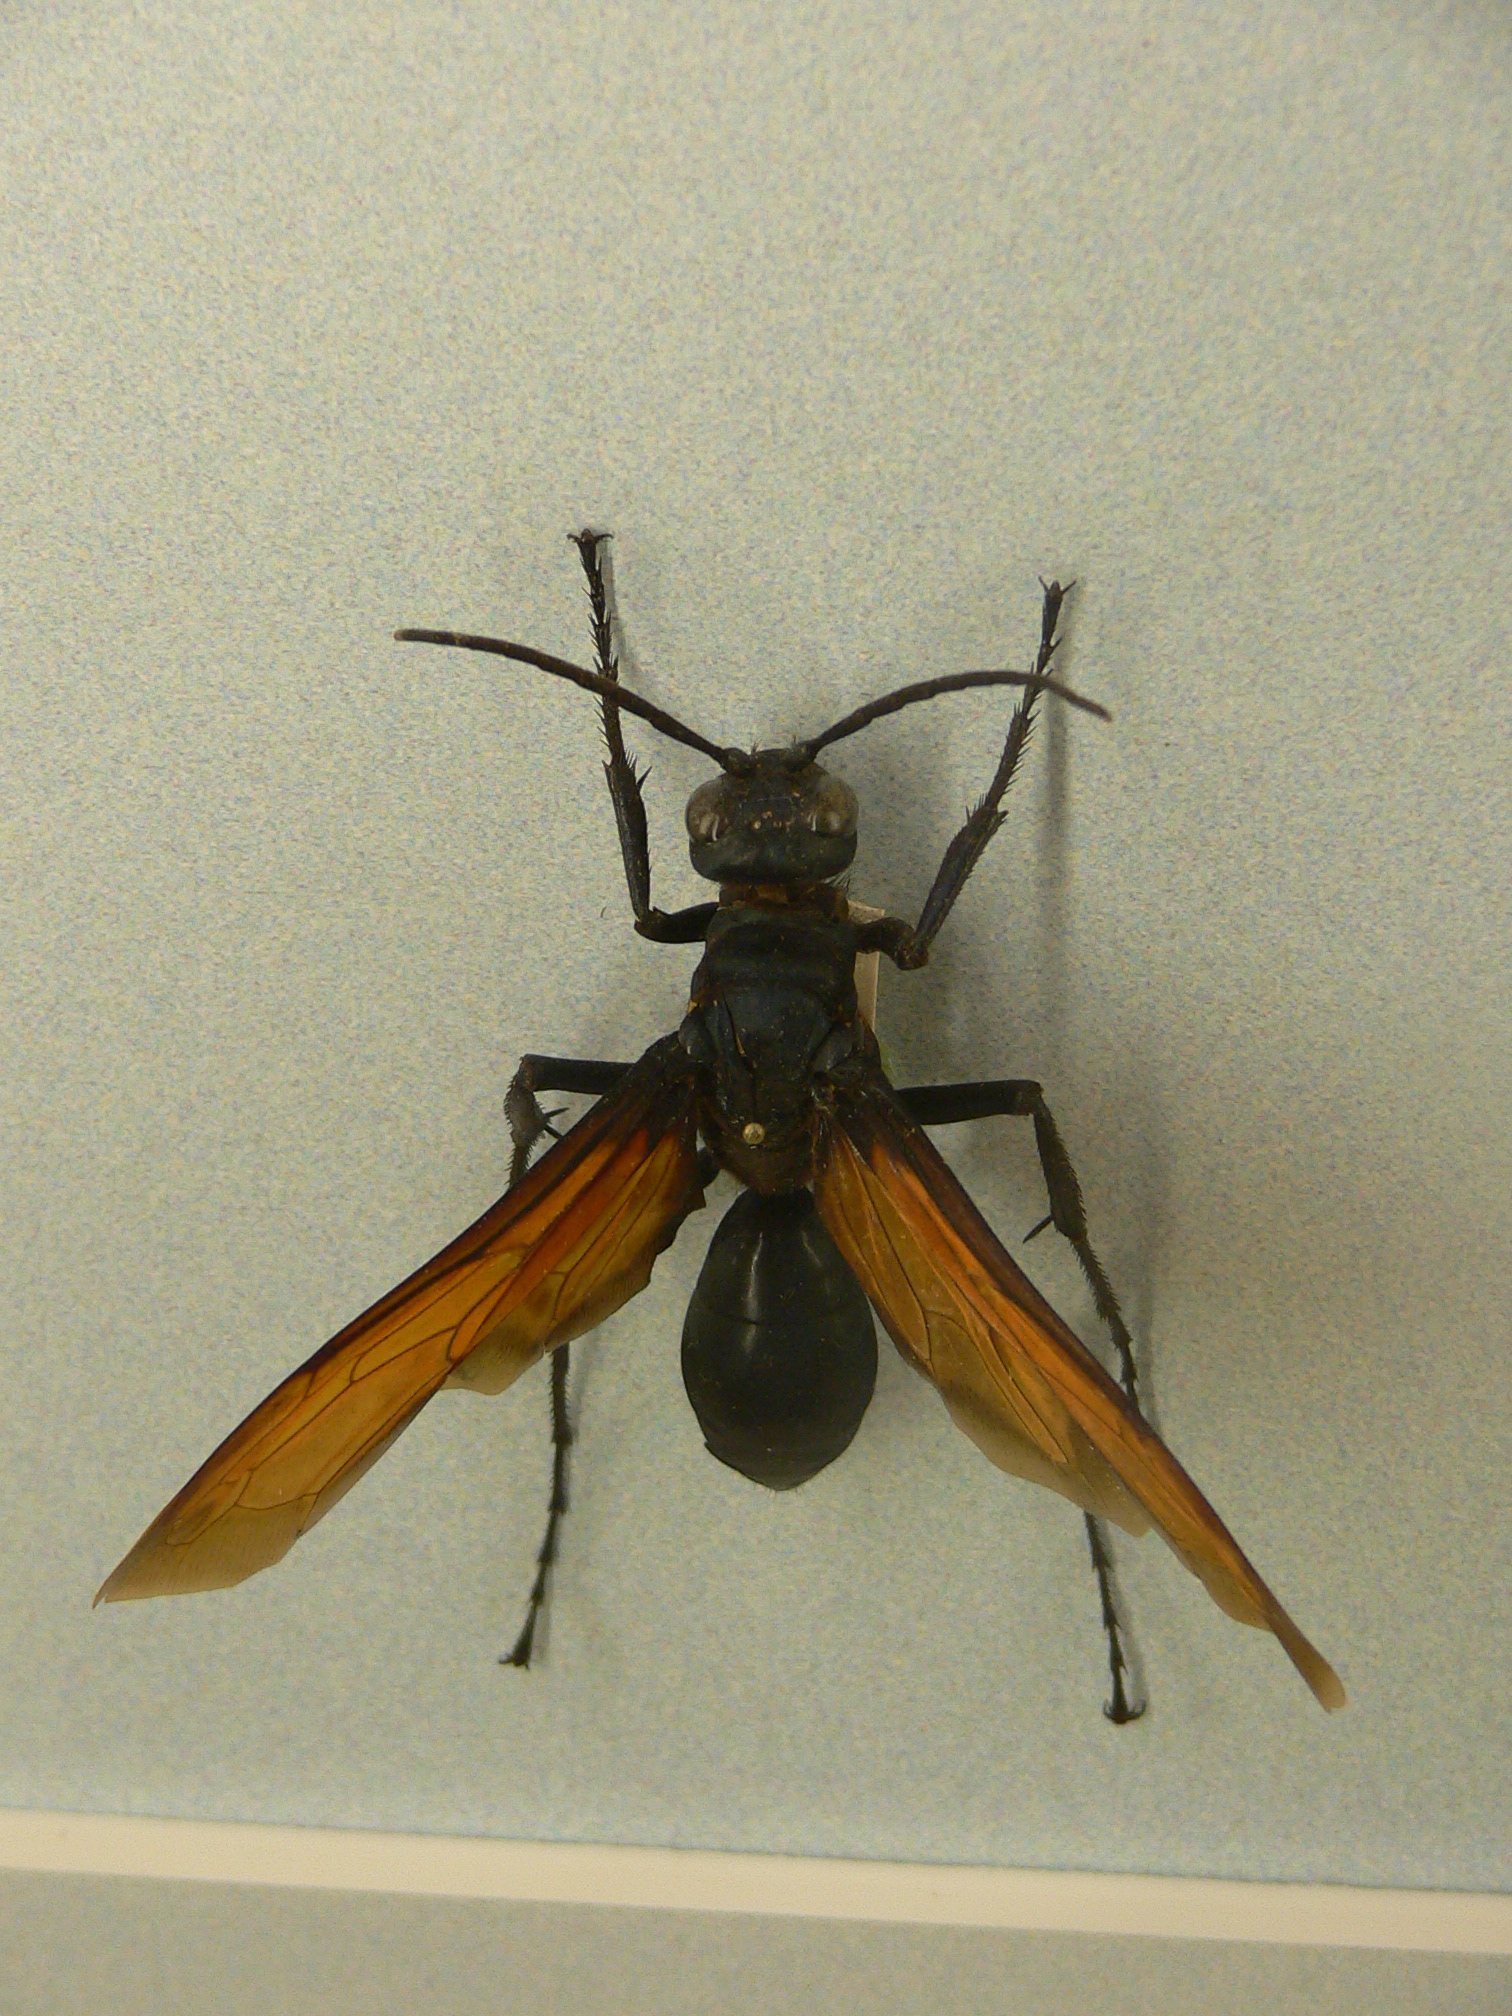 Filetarantula Hawk Wasp 3jpg Wikimedia Commons